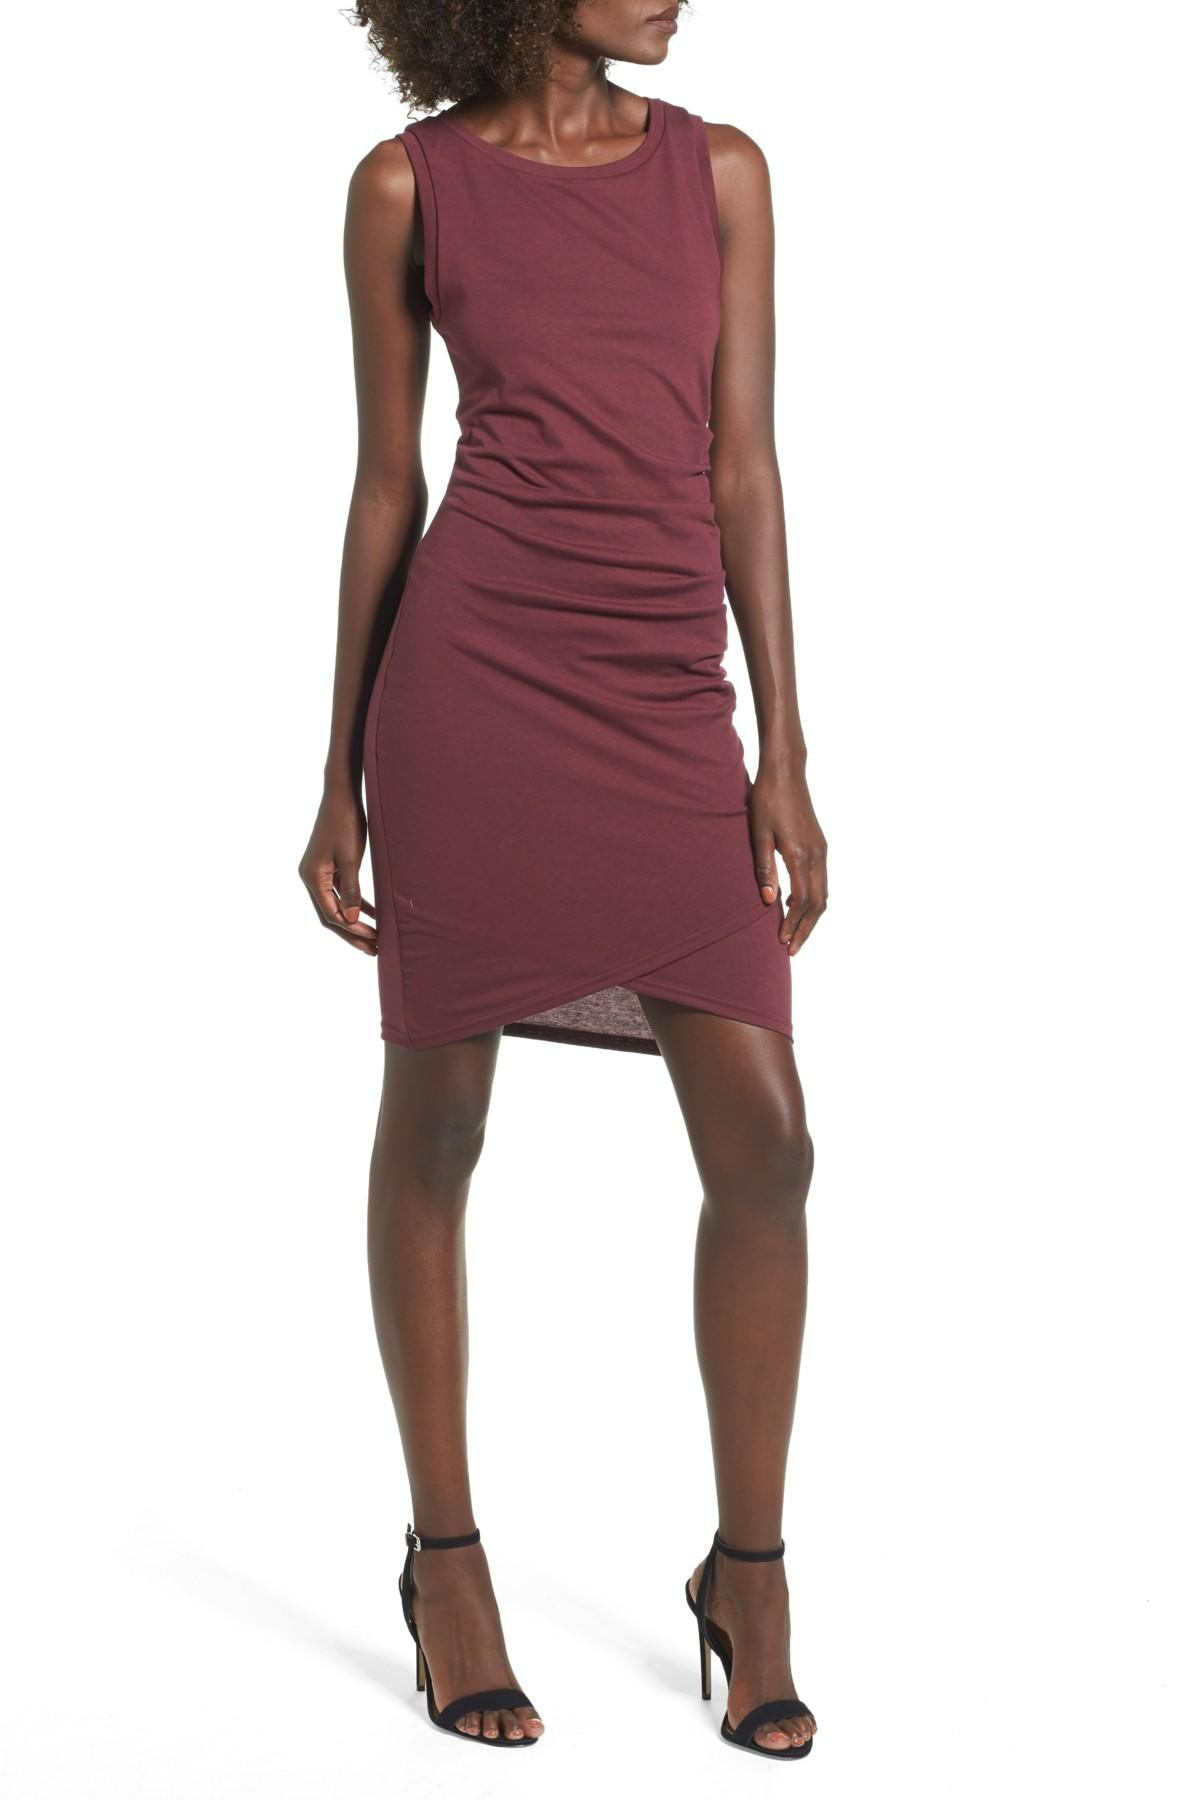 Leith ruched body con tank dress shopping websites sequin